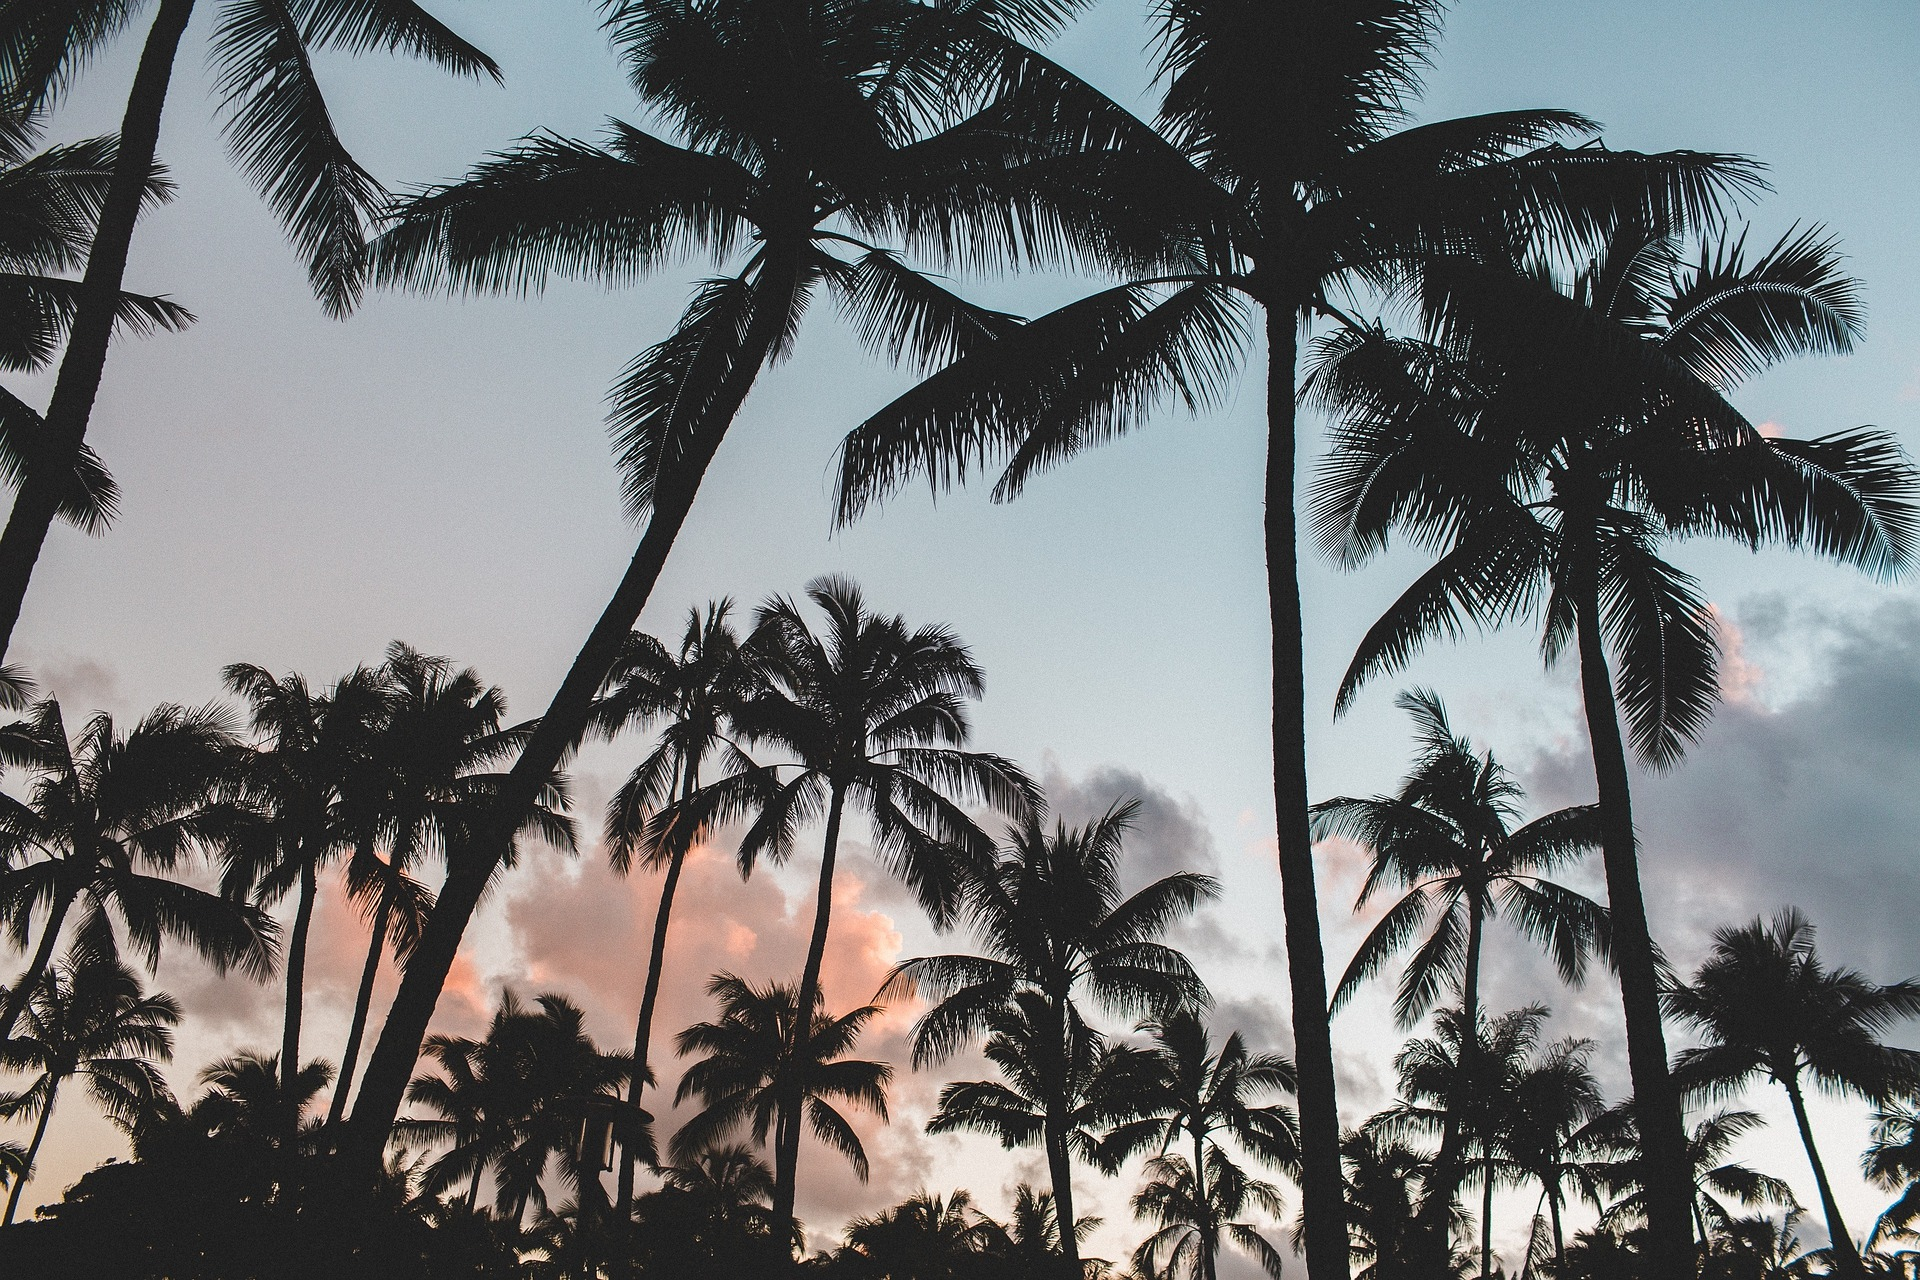 coconut palm trees in sunset sky image